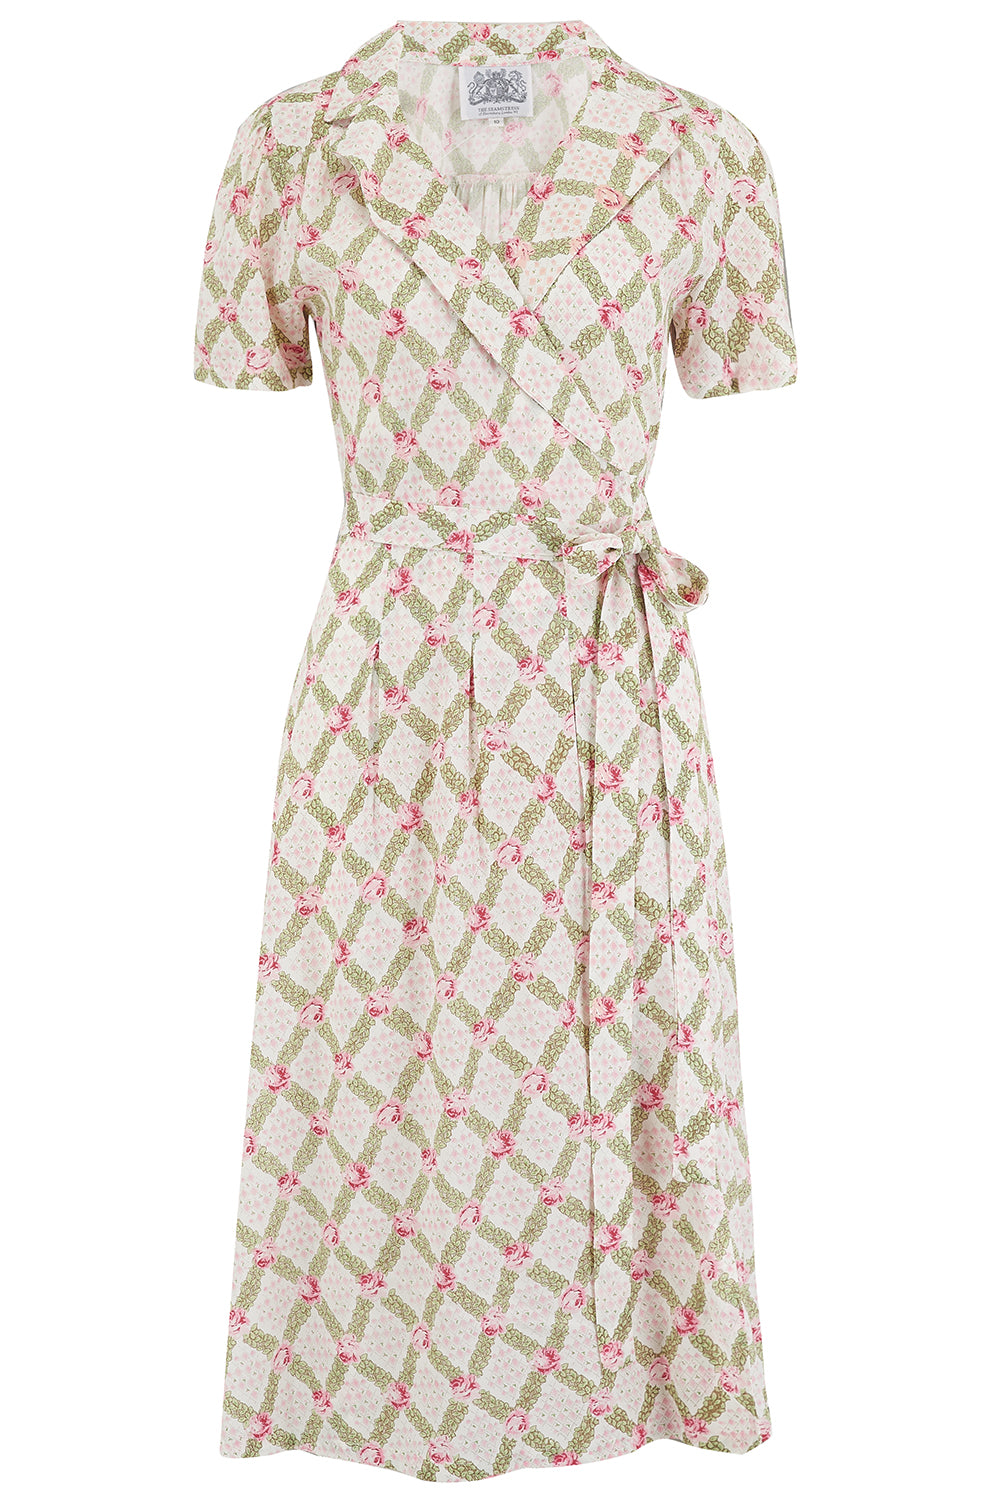 "The Seamstress of Bloomsbury ""Peggy"" Wrap Dress in Rose Kiss Print, Classic 1940s Vintage Style - RocknRomance Clothing"